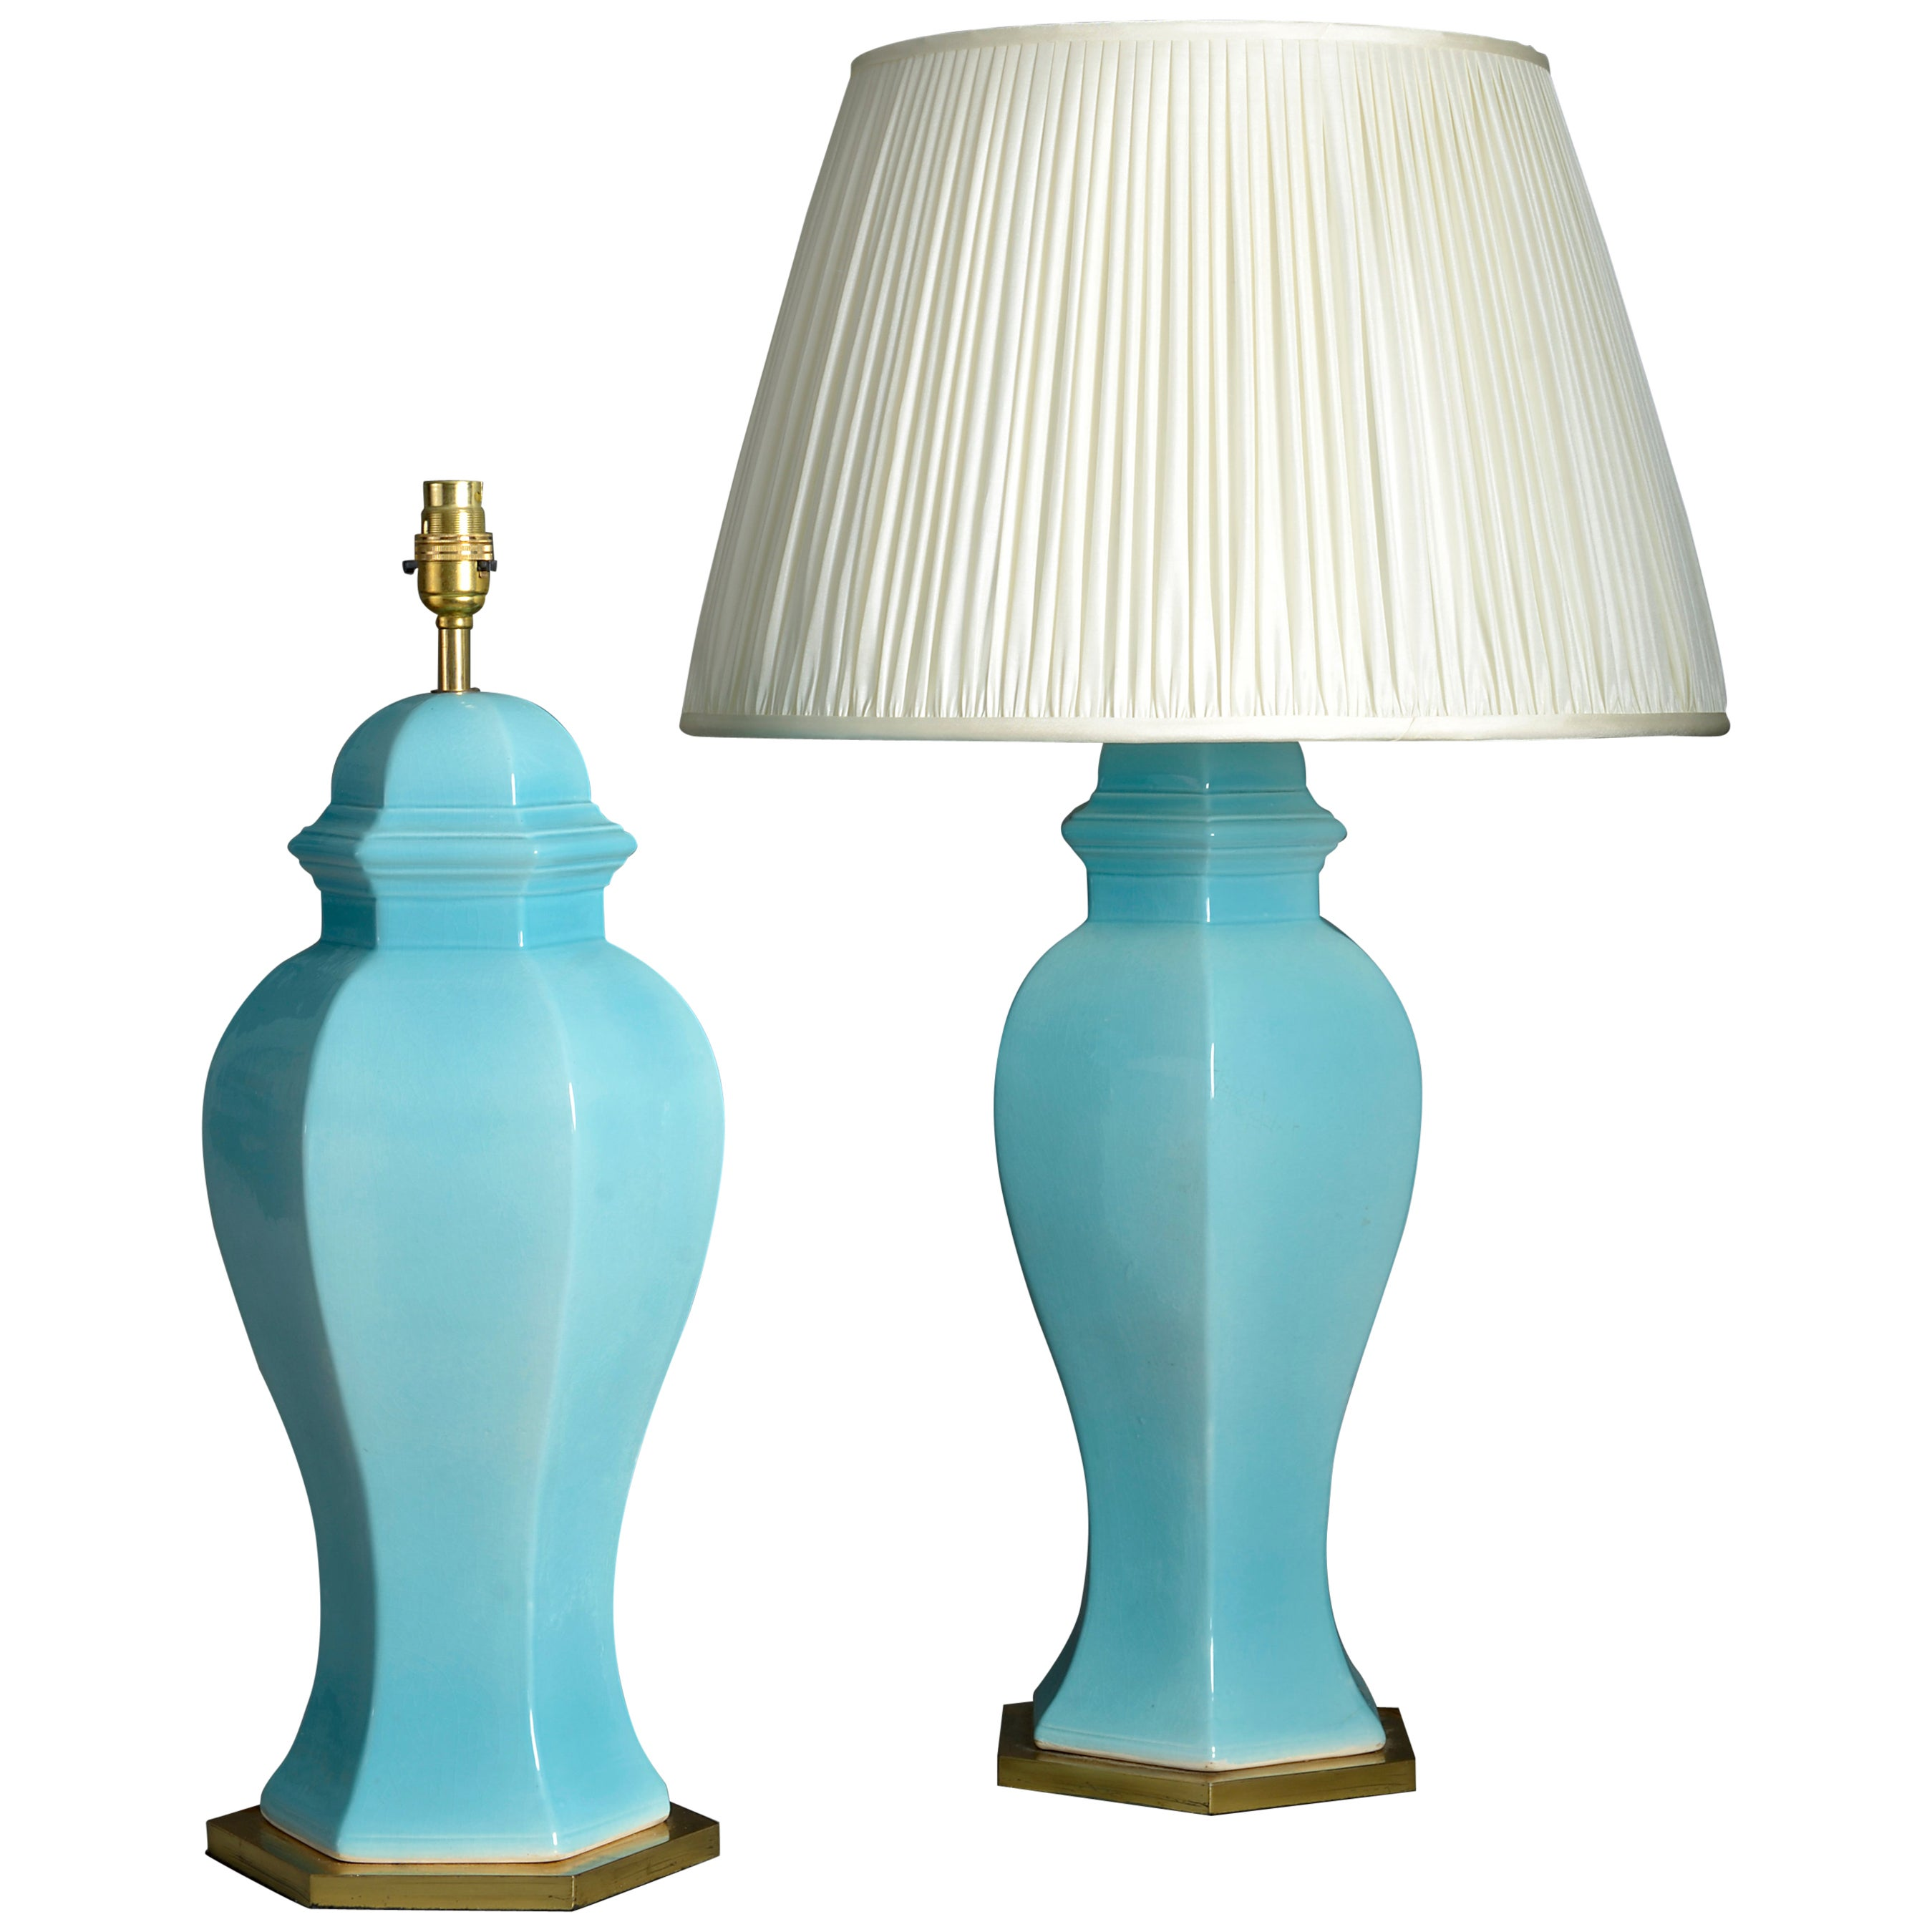 Pair of Midcentury Turquoise Glazed Vase Lamps